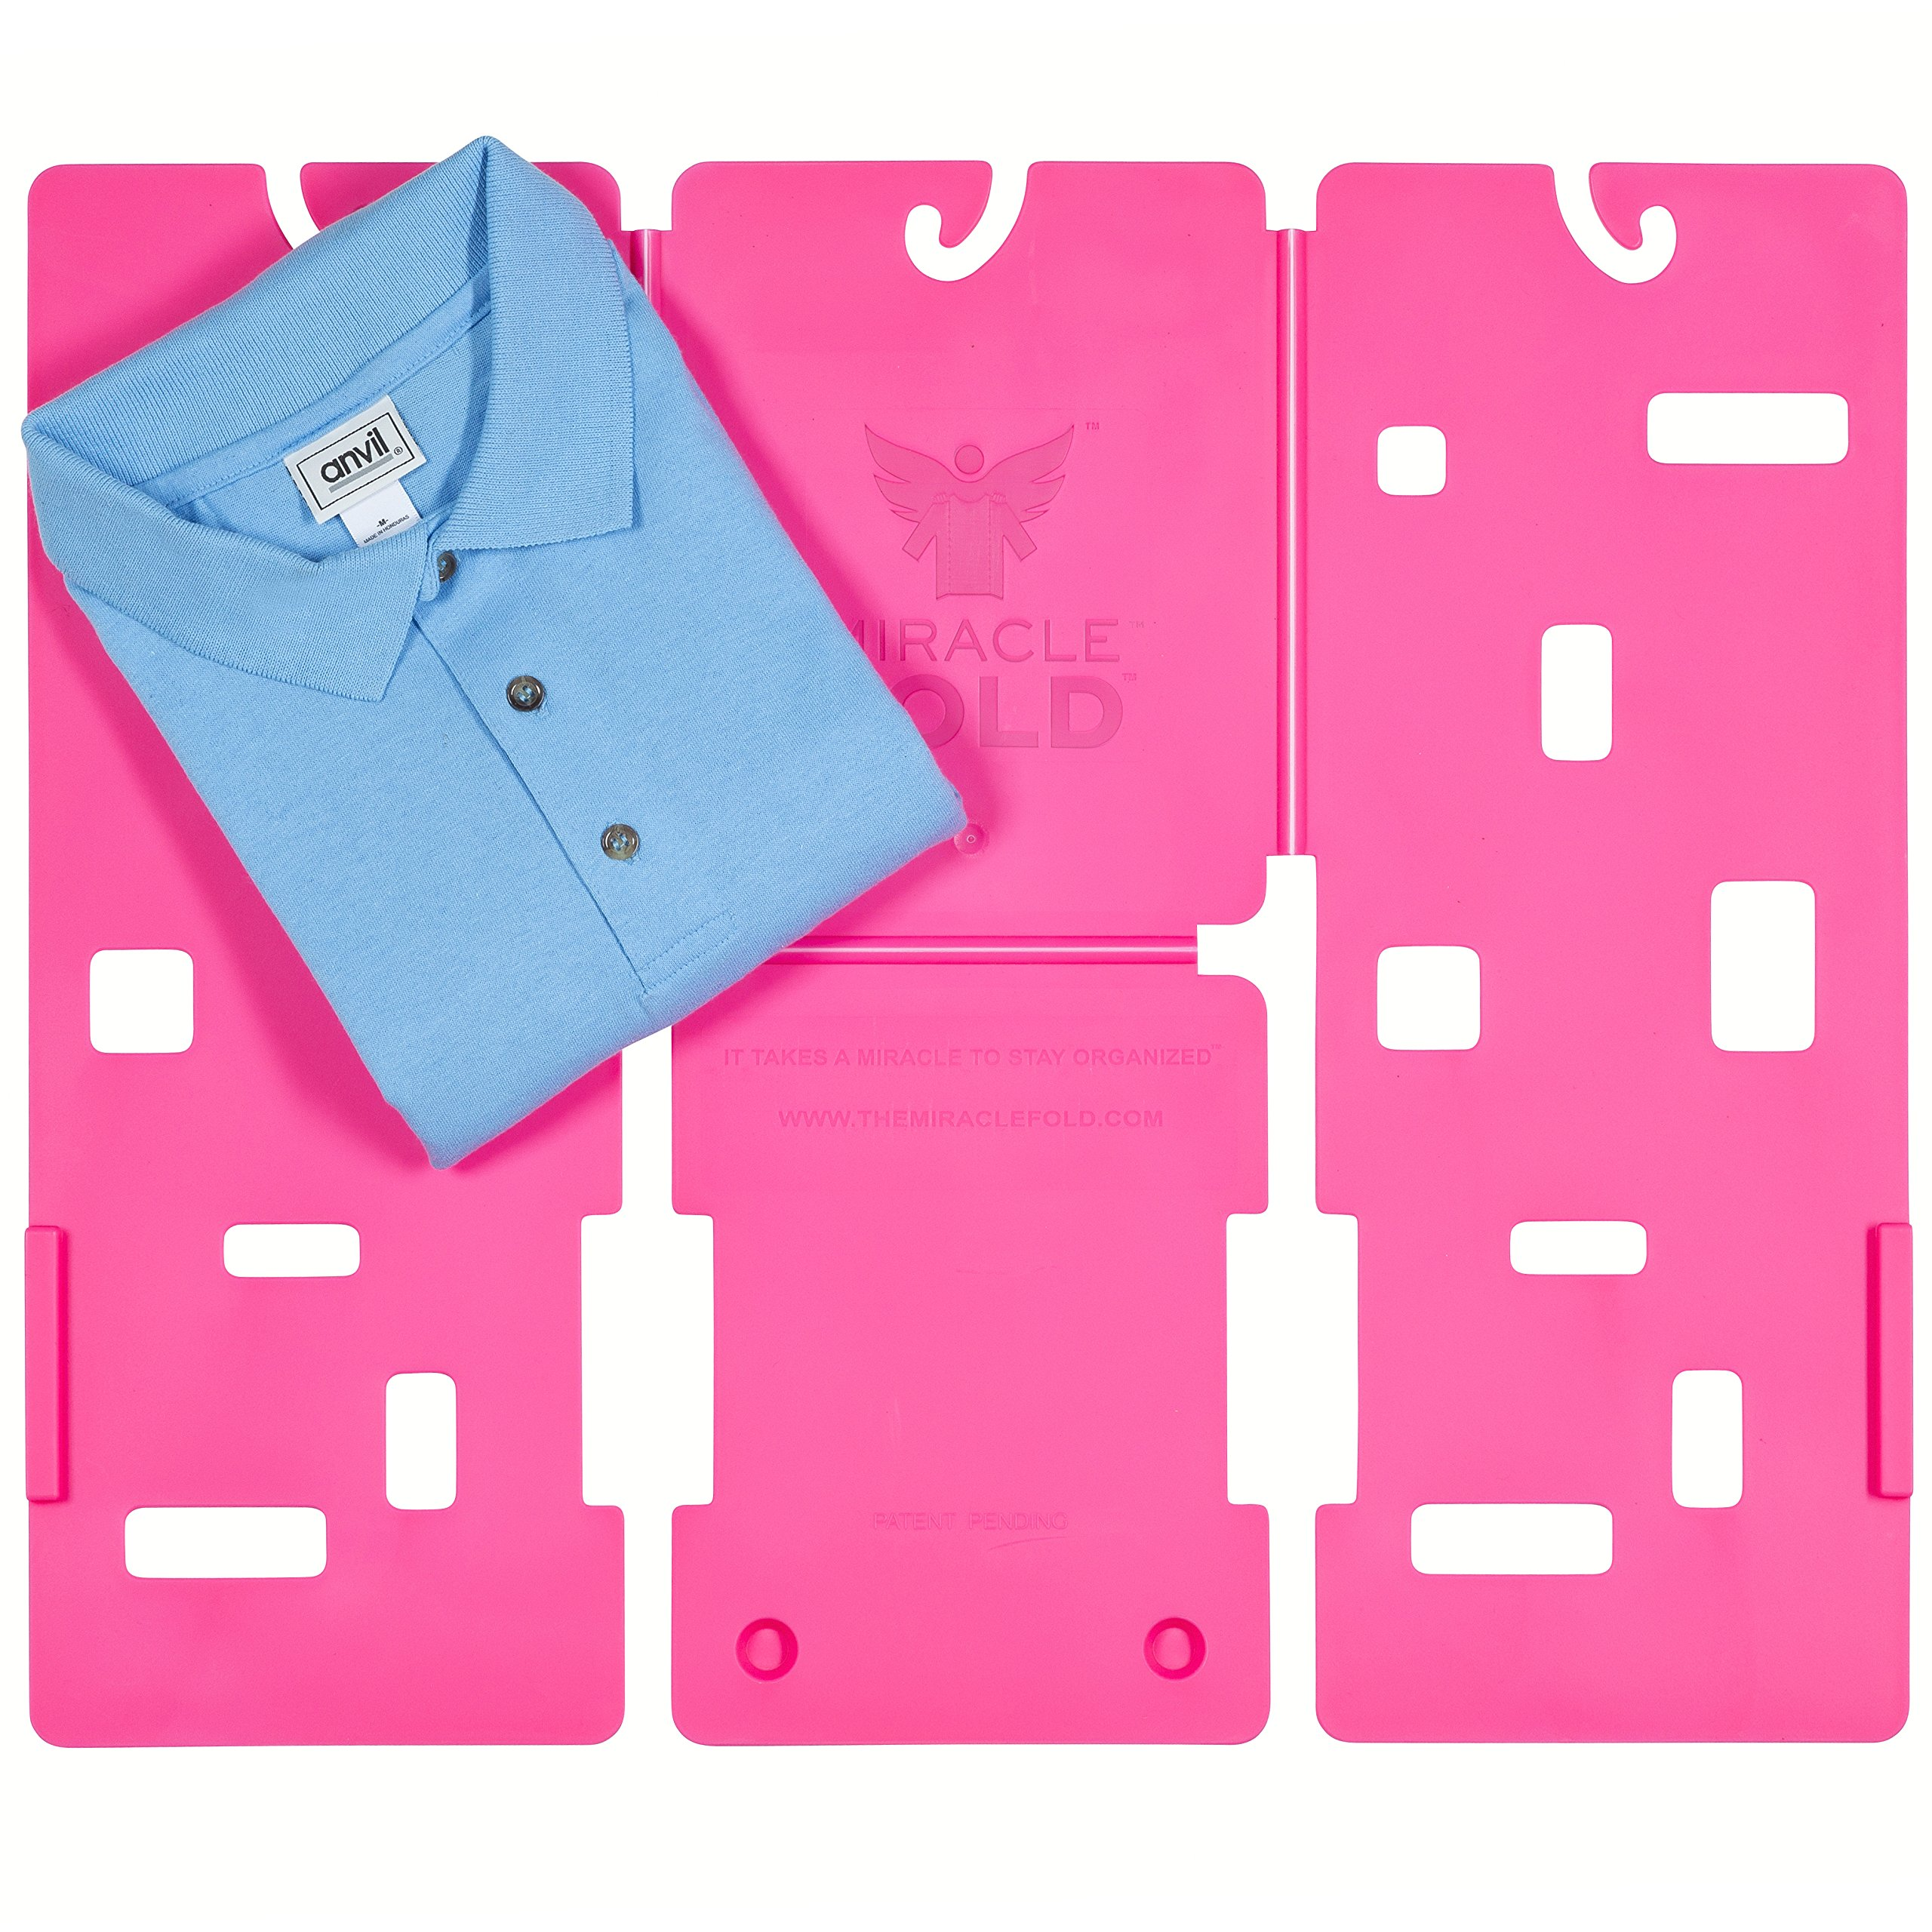 MiracleFold Junior Size Laundry Folder Clothes Folder T-Shirts Pants Towels Organizer Fast Easy and Fun Time Saver (Hot Pink)